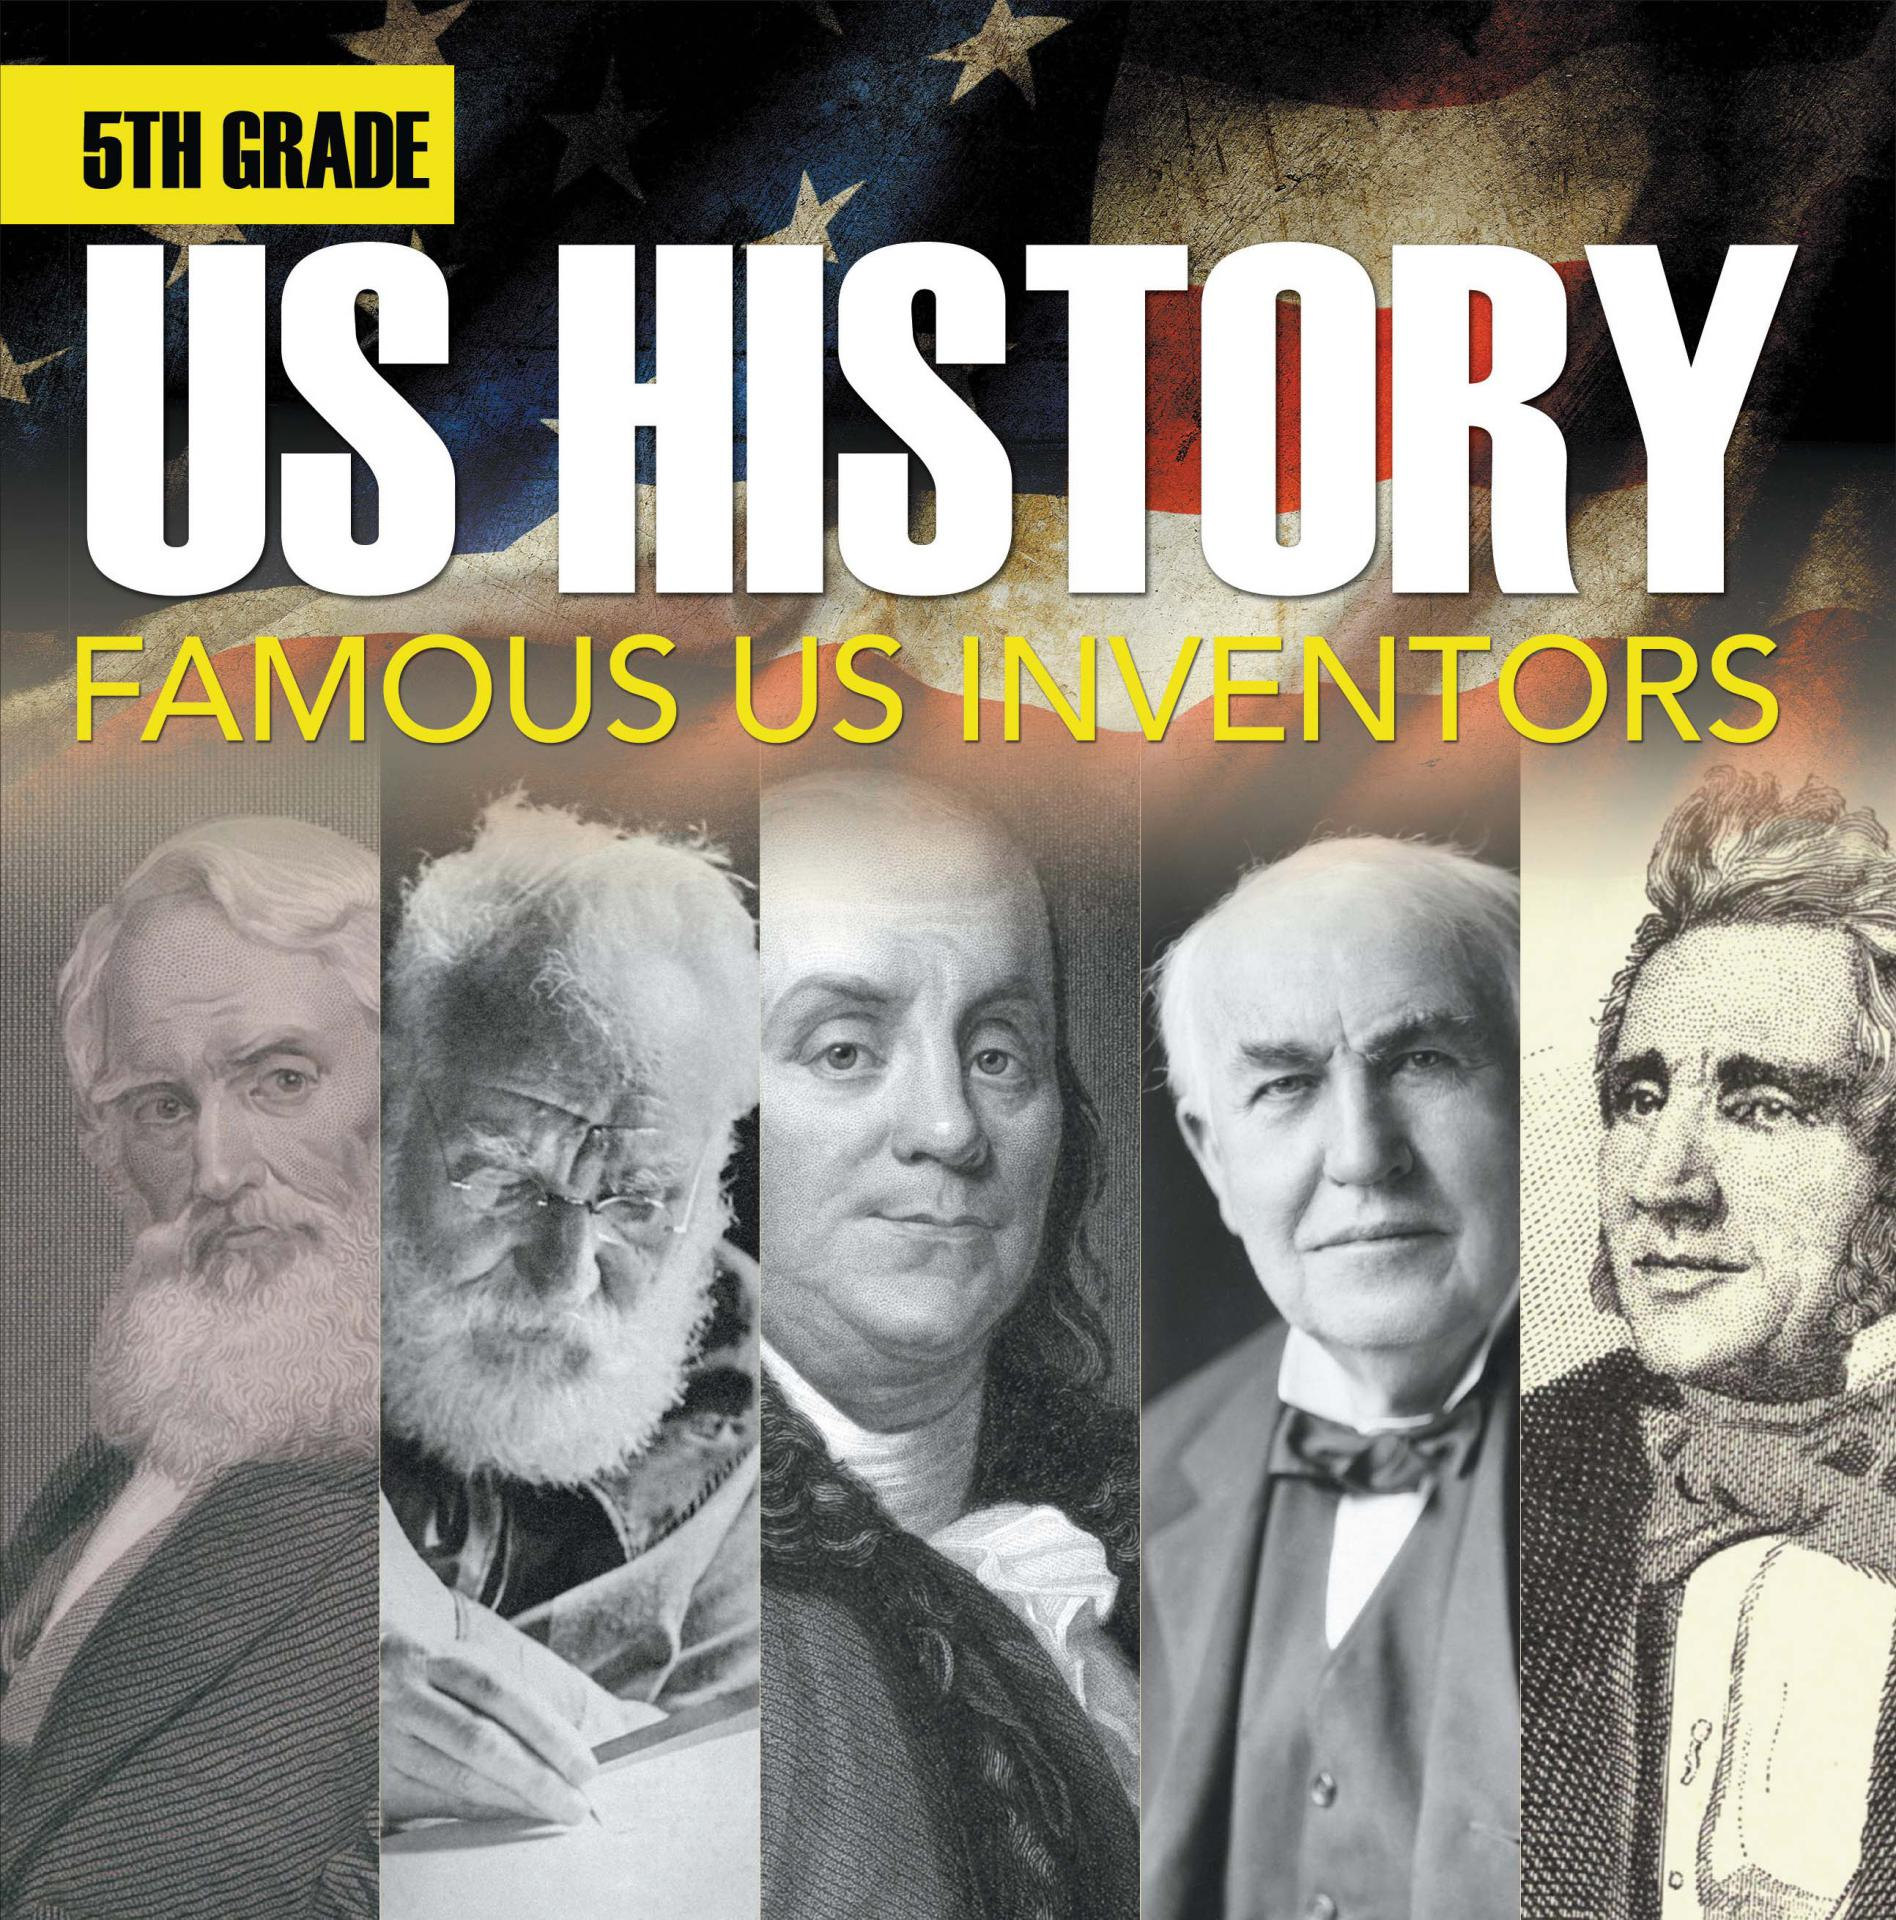 5th Grade Us History: Famous US Inventors Fifth Grade Books Inventors for Kids